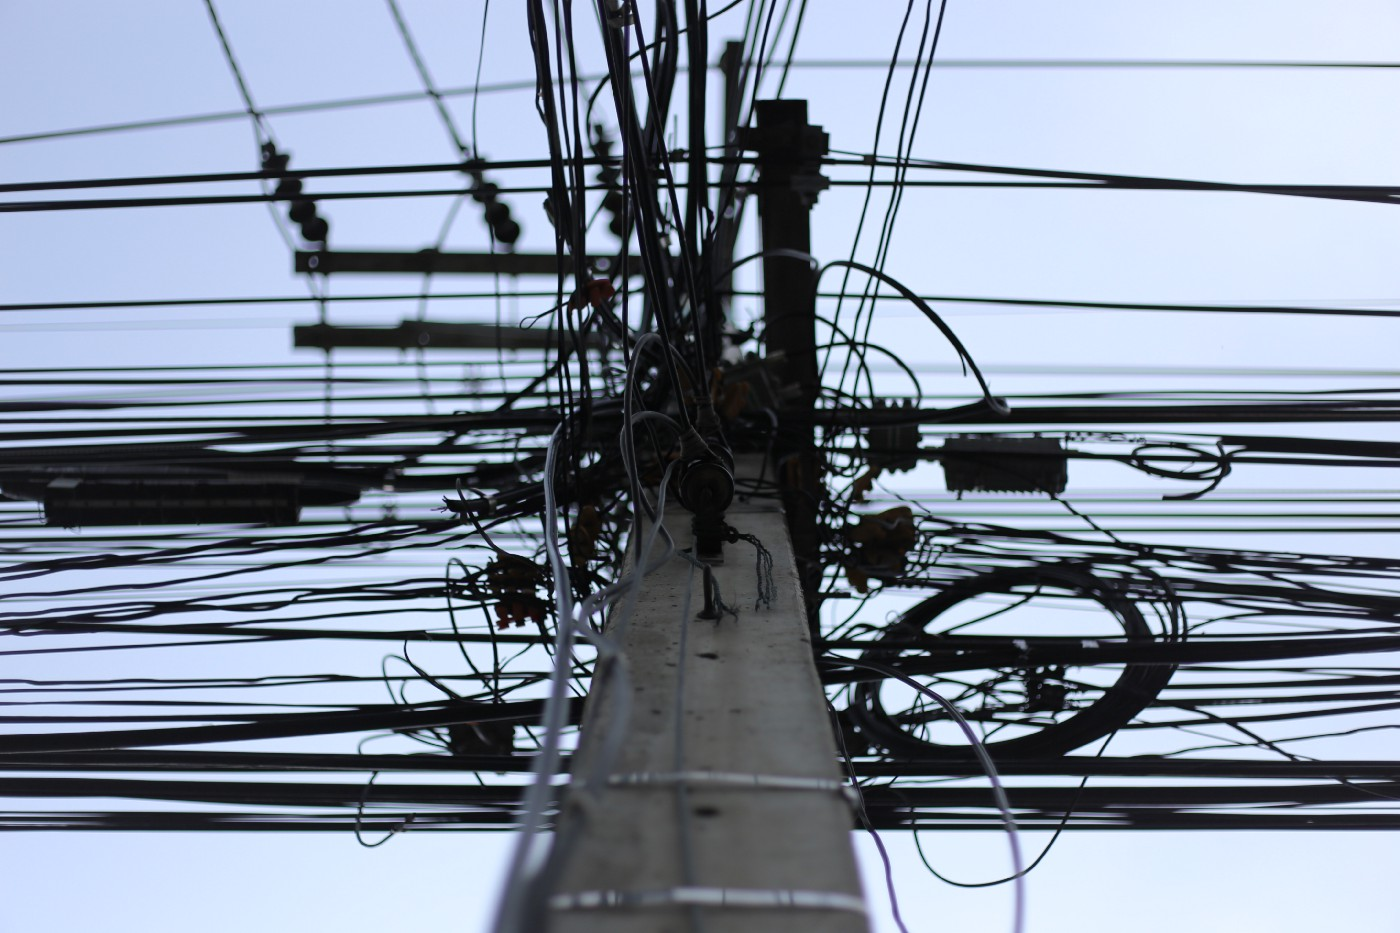 A telephone pole with a massive number of wires attached.